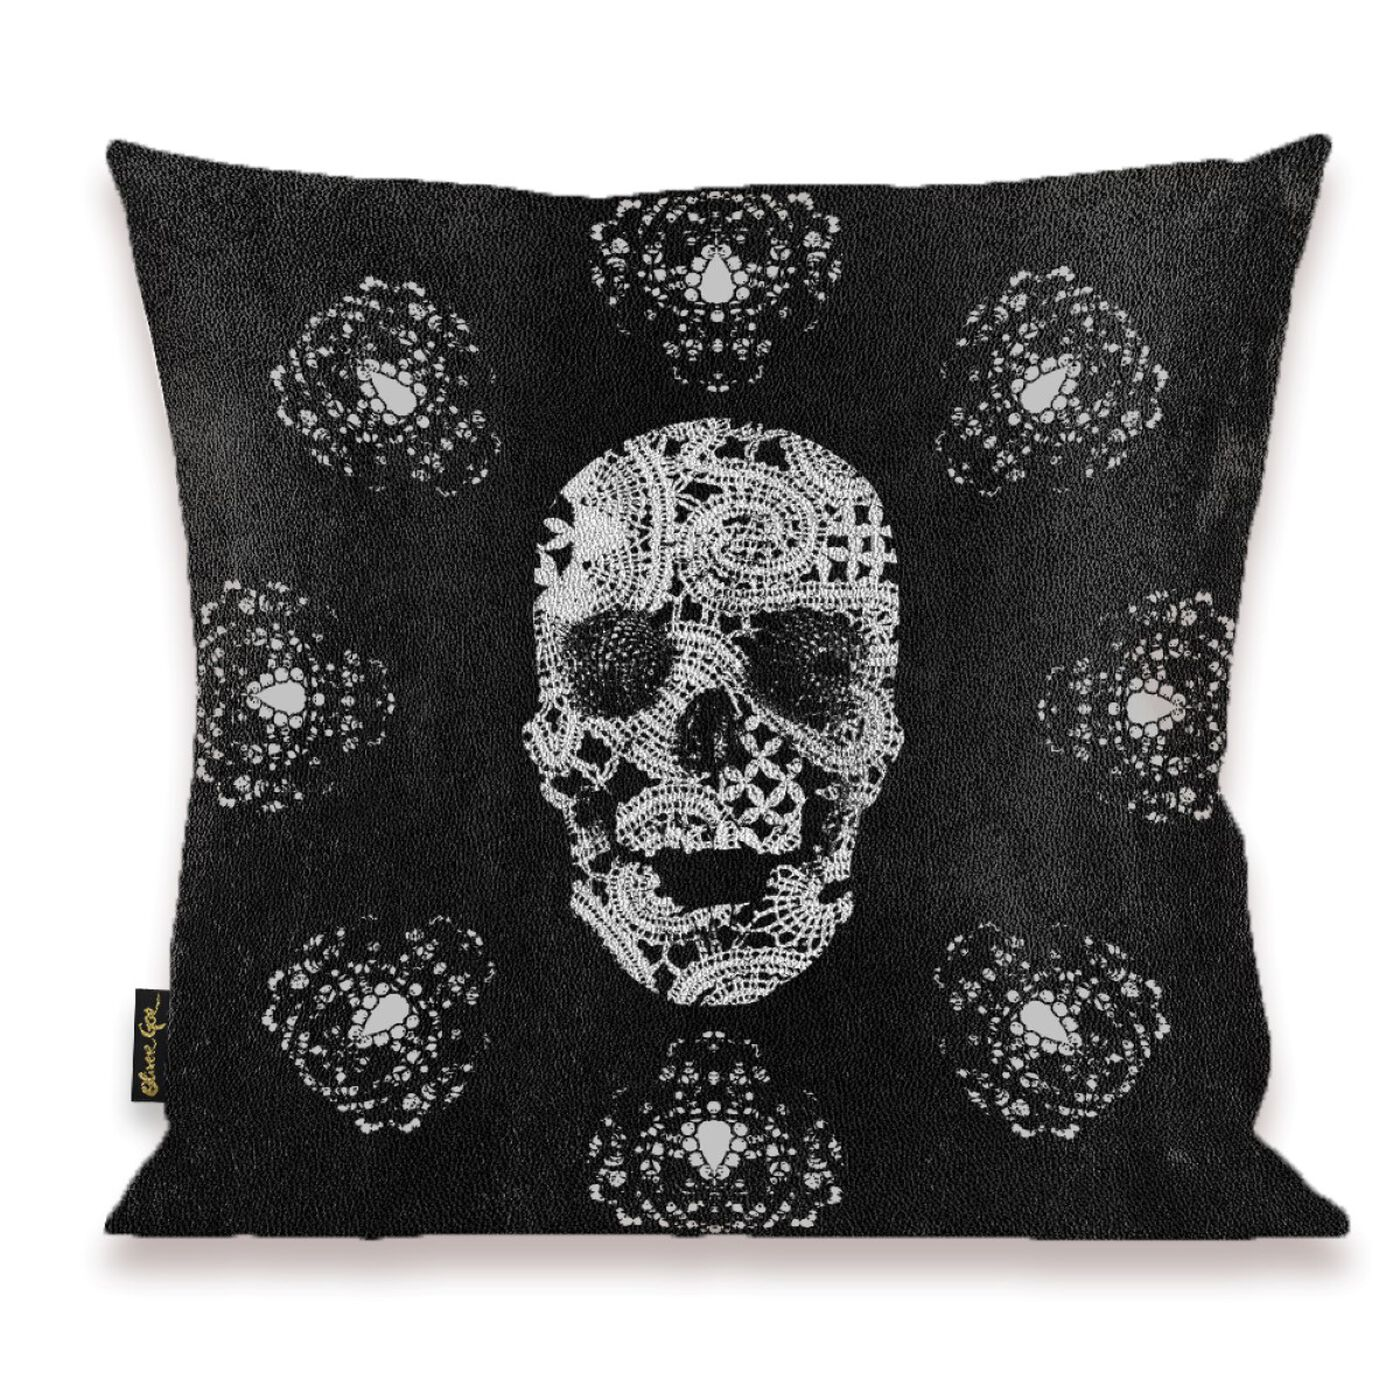 Lace and Leather Pillow